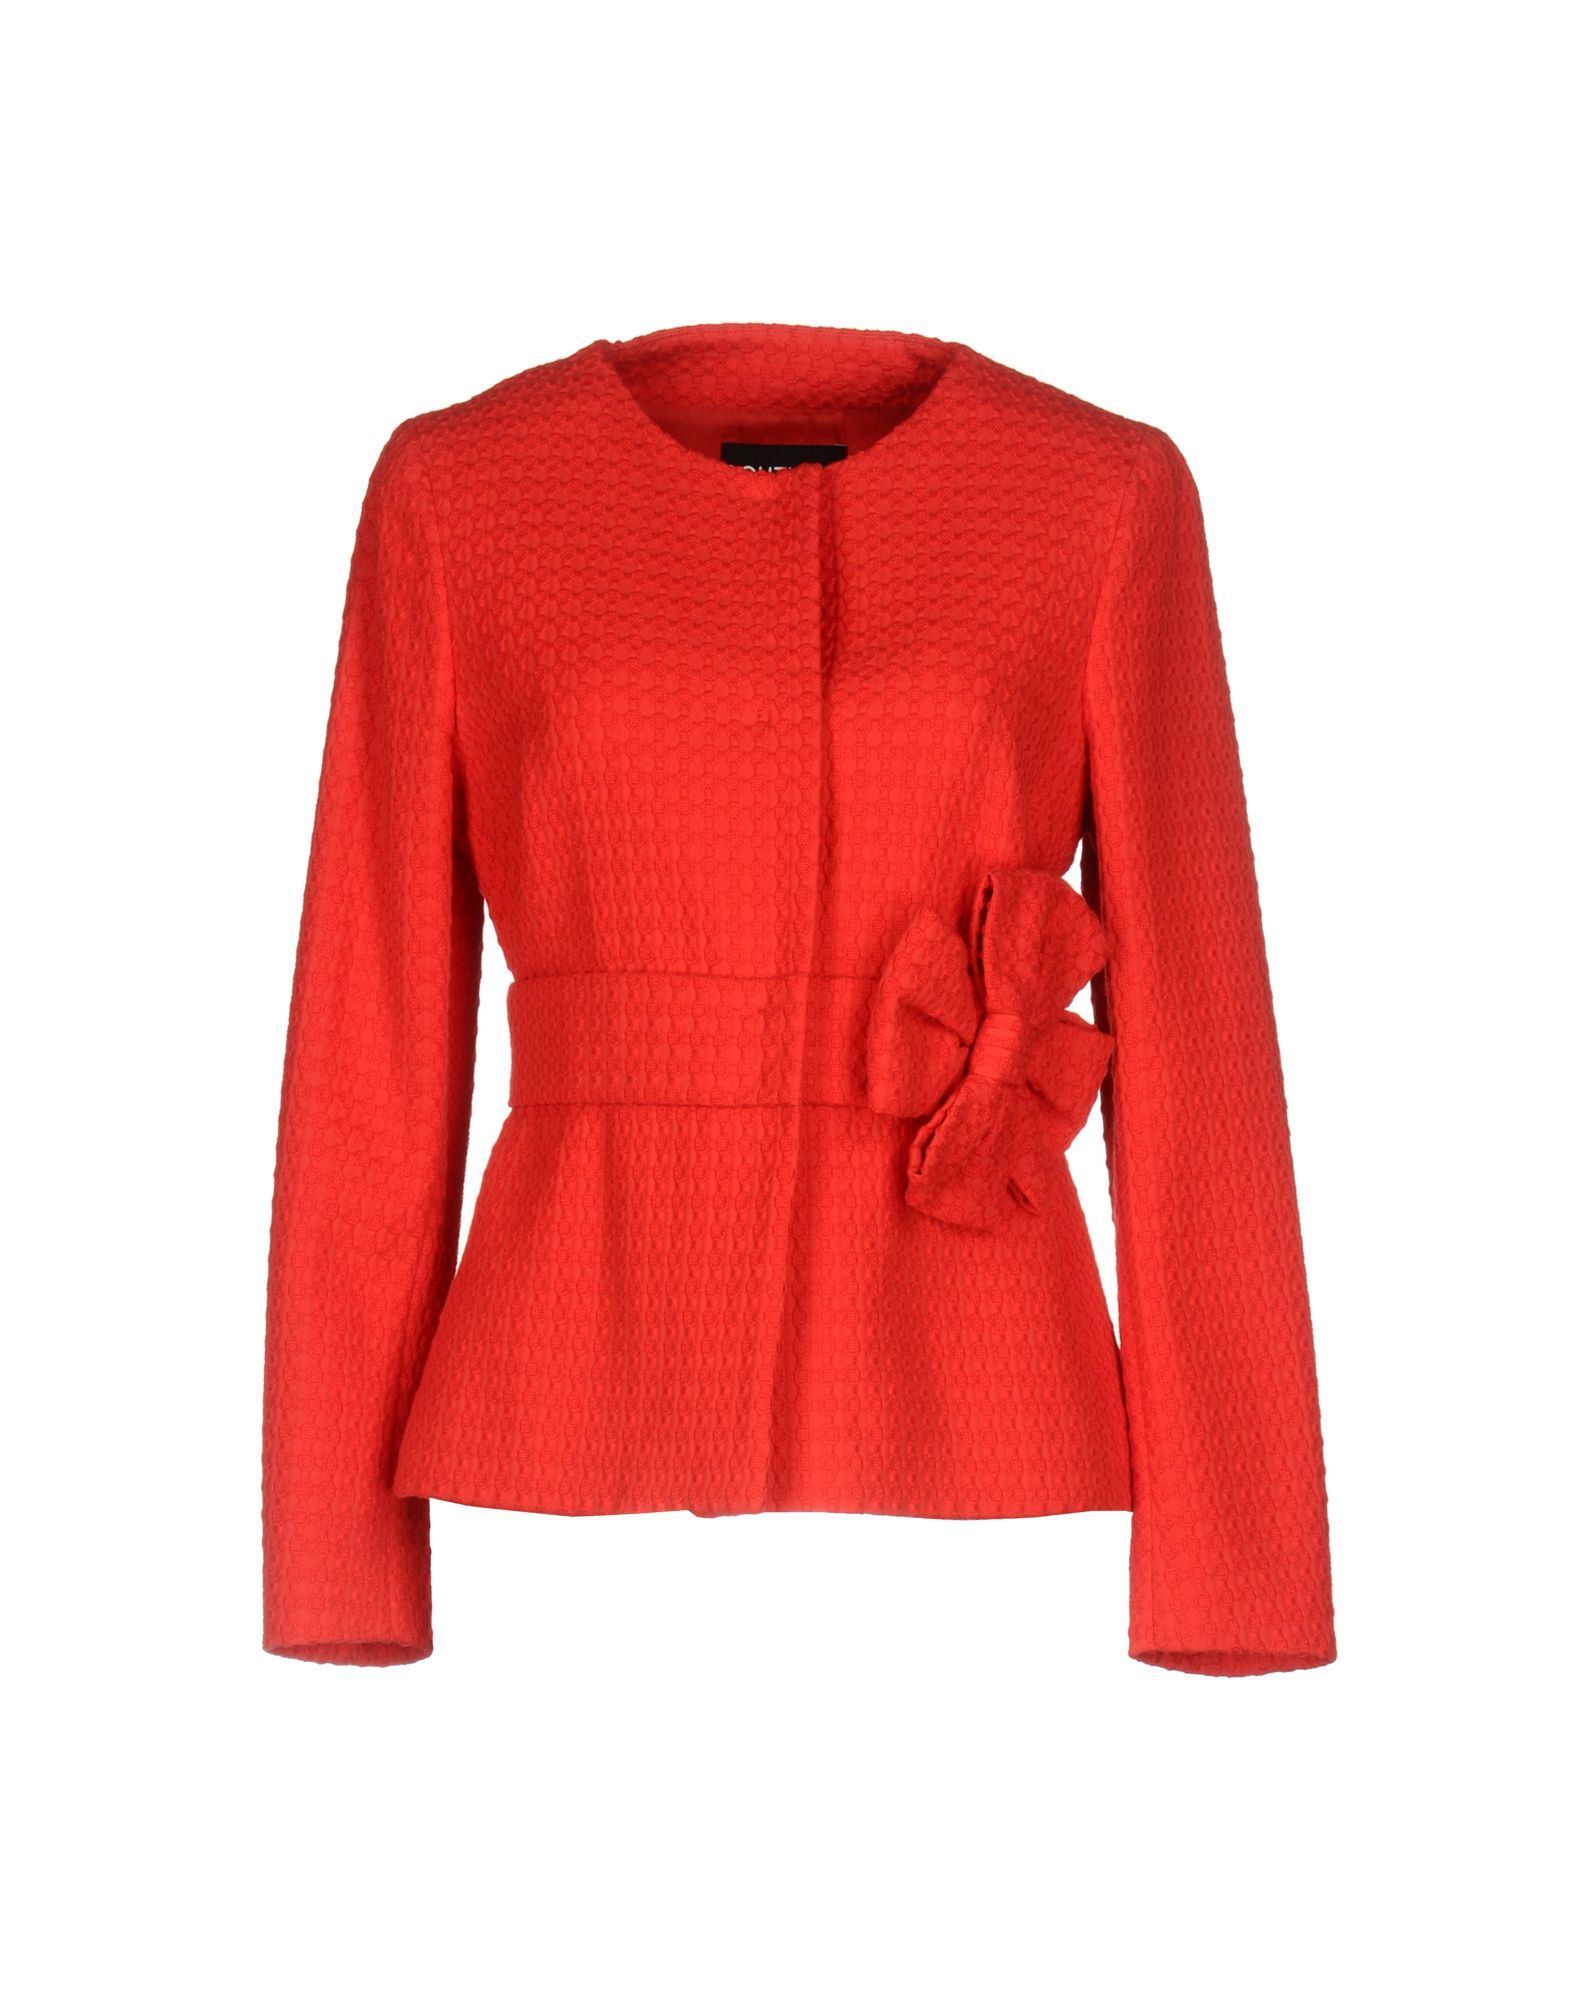 Boutique Moschino Red Cotton Jacquard Jacket